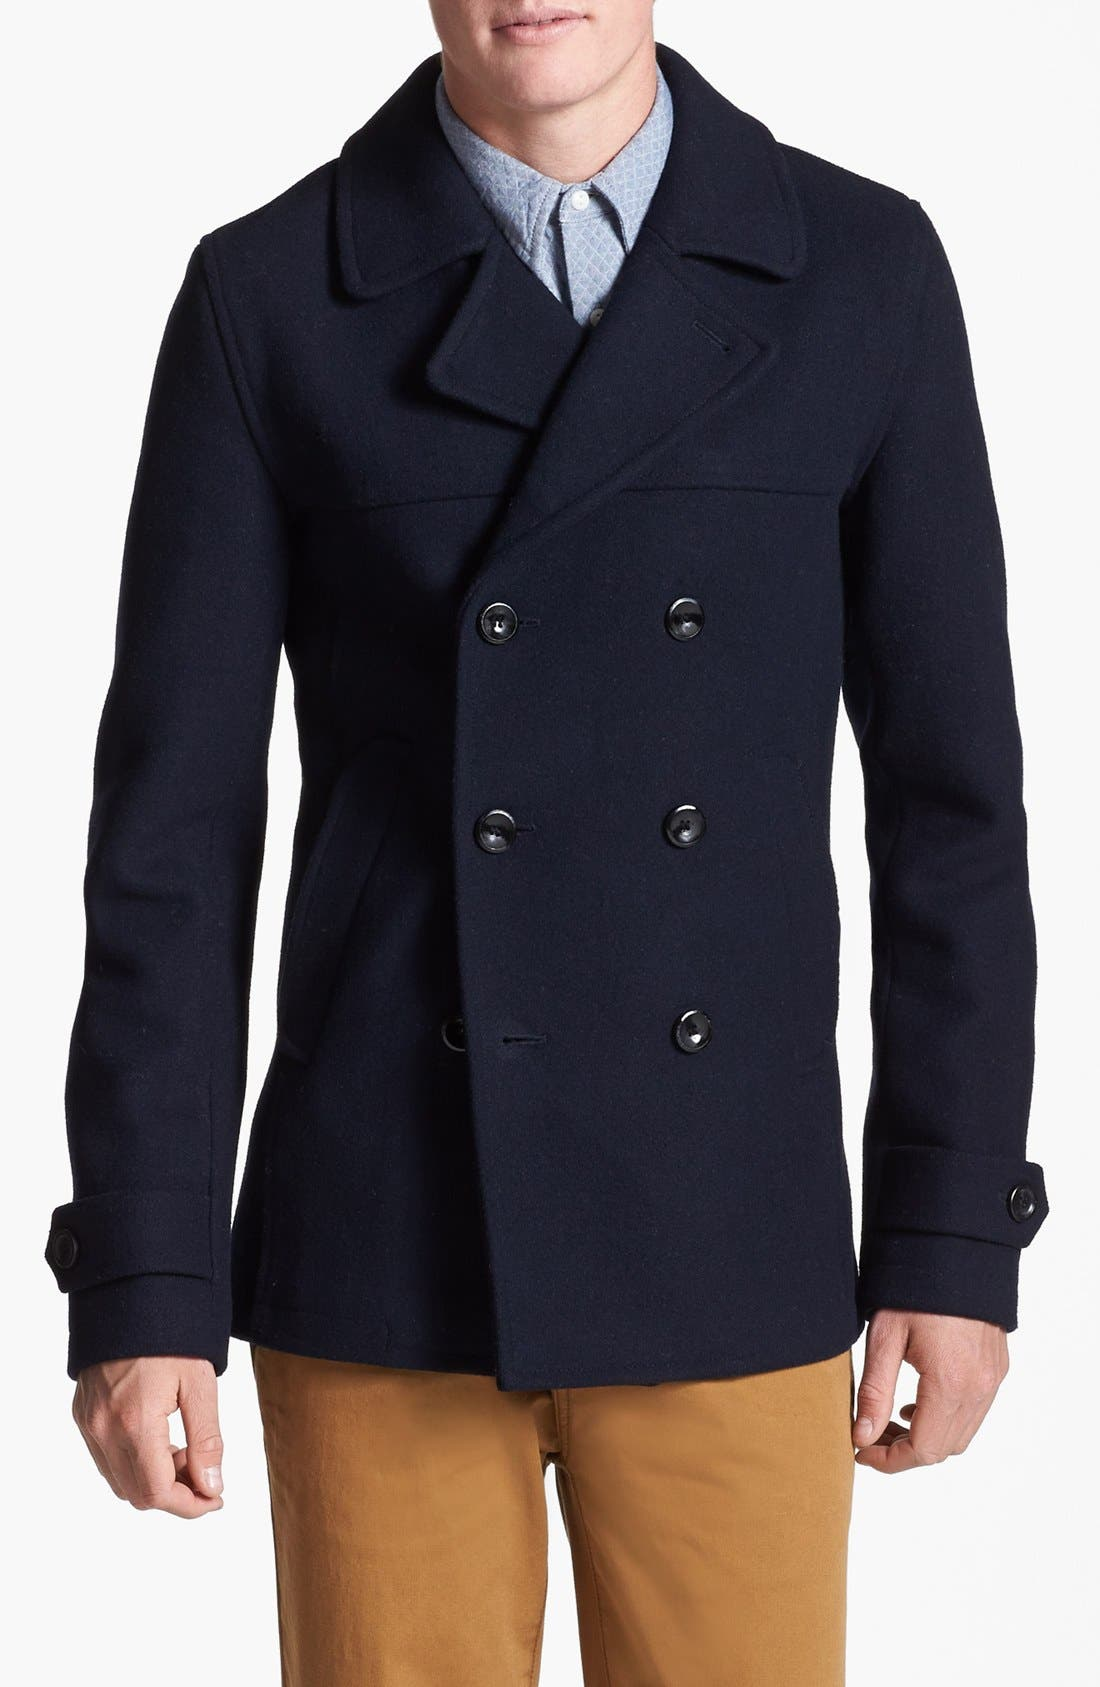 Main Image - Topman Skinny Fit Double Breasted Wool Blend Peacoat